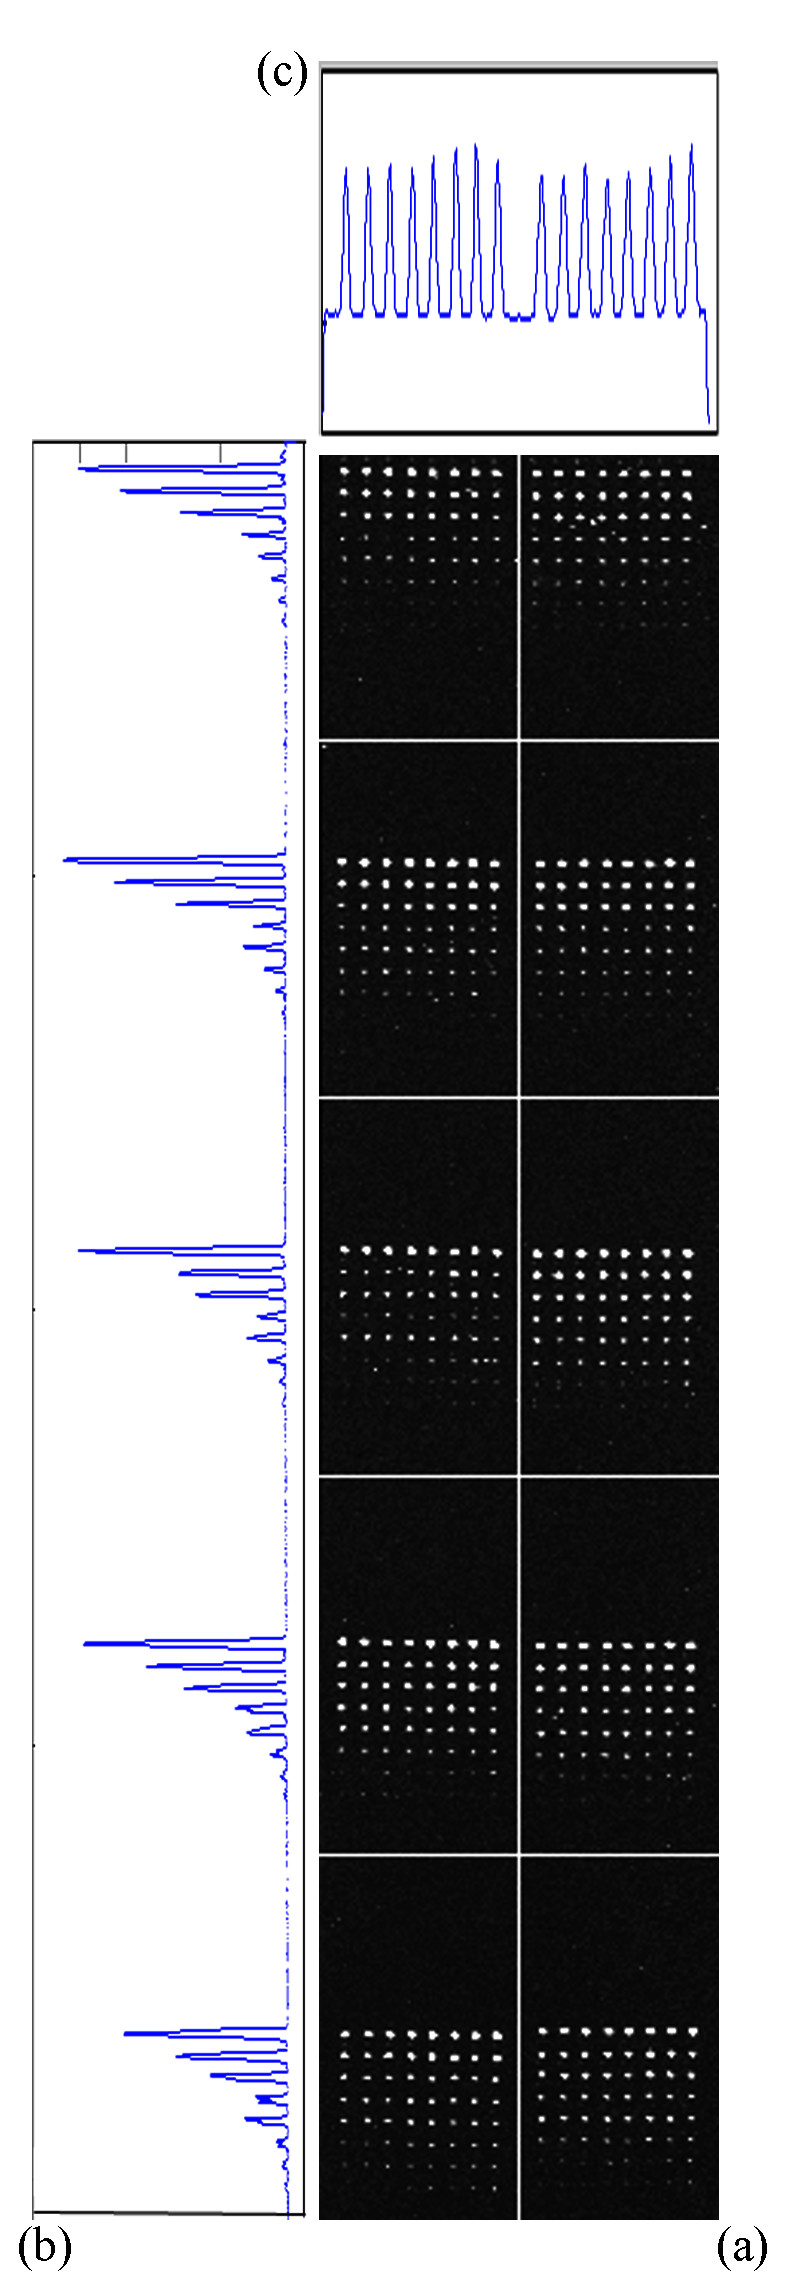 https://static-content.springer.com/image/art%3A10.1186%2F1471-2105-12-113/MediaObjects/12859_2010_Article_4507_Fig10_HTML.jpg